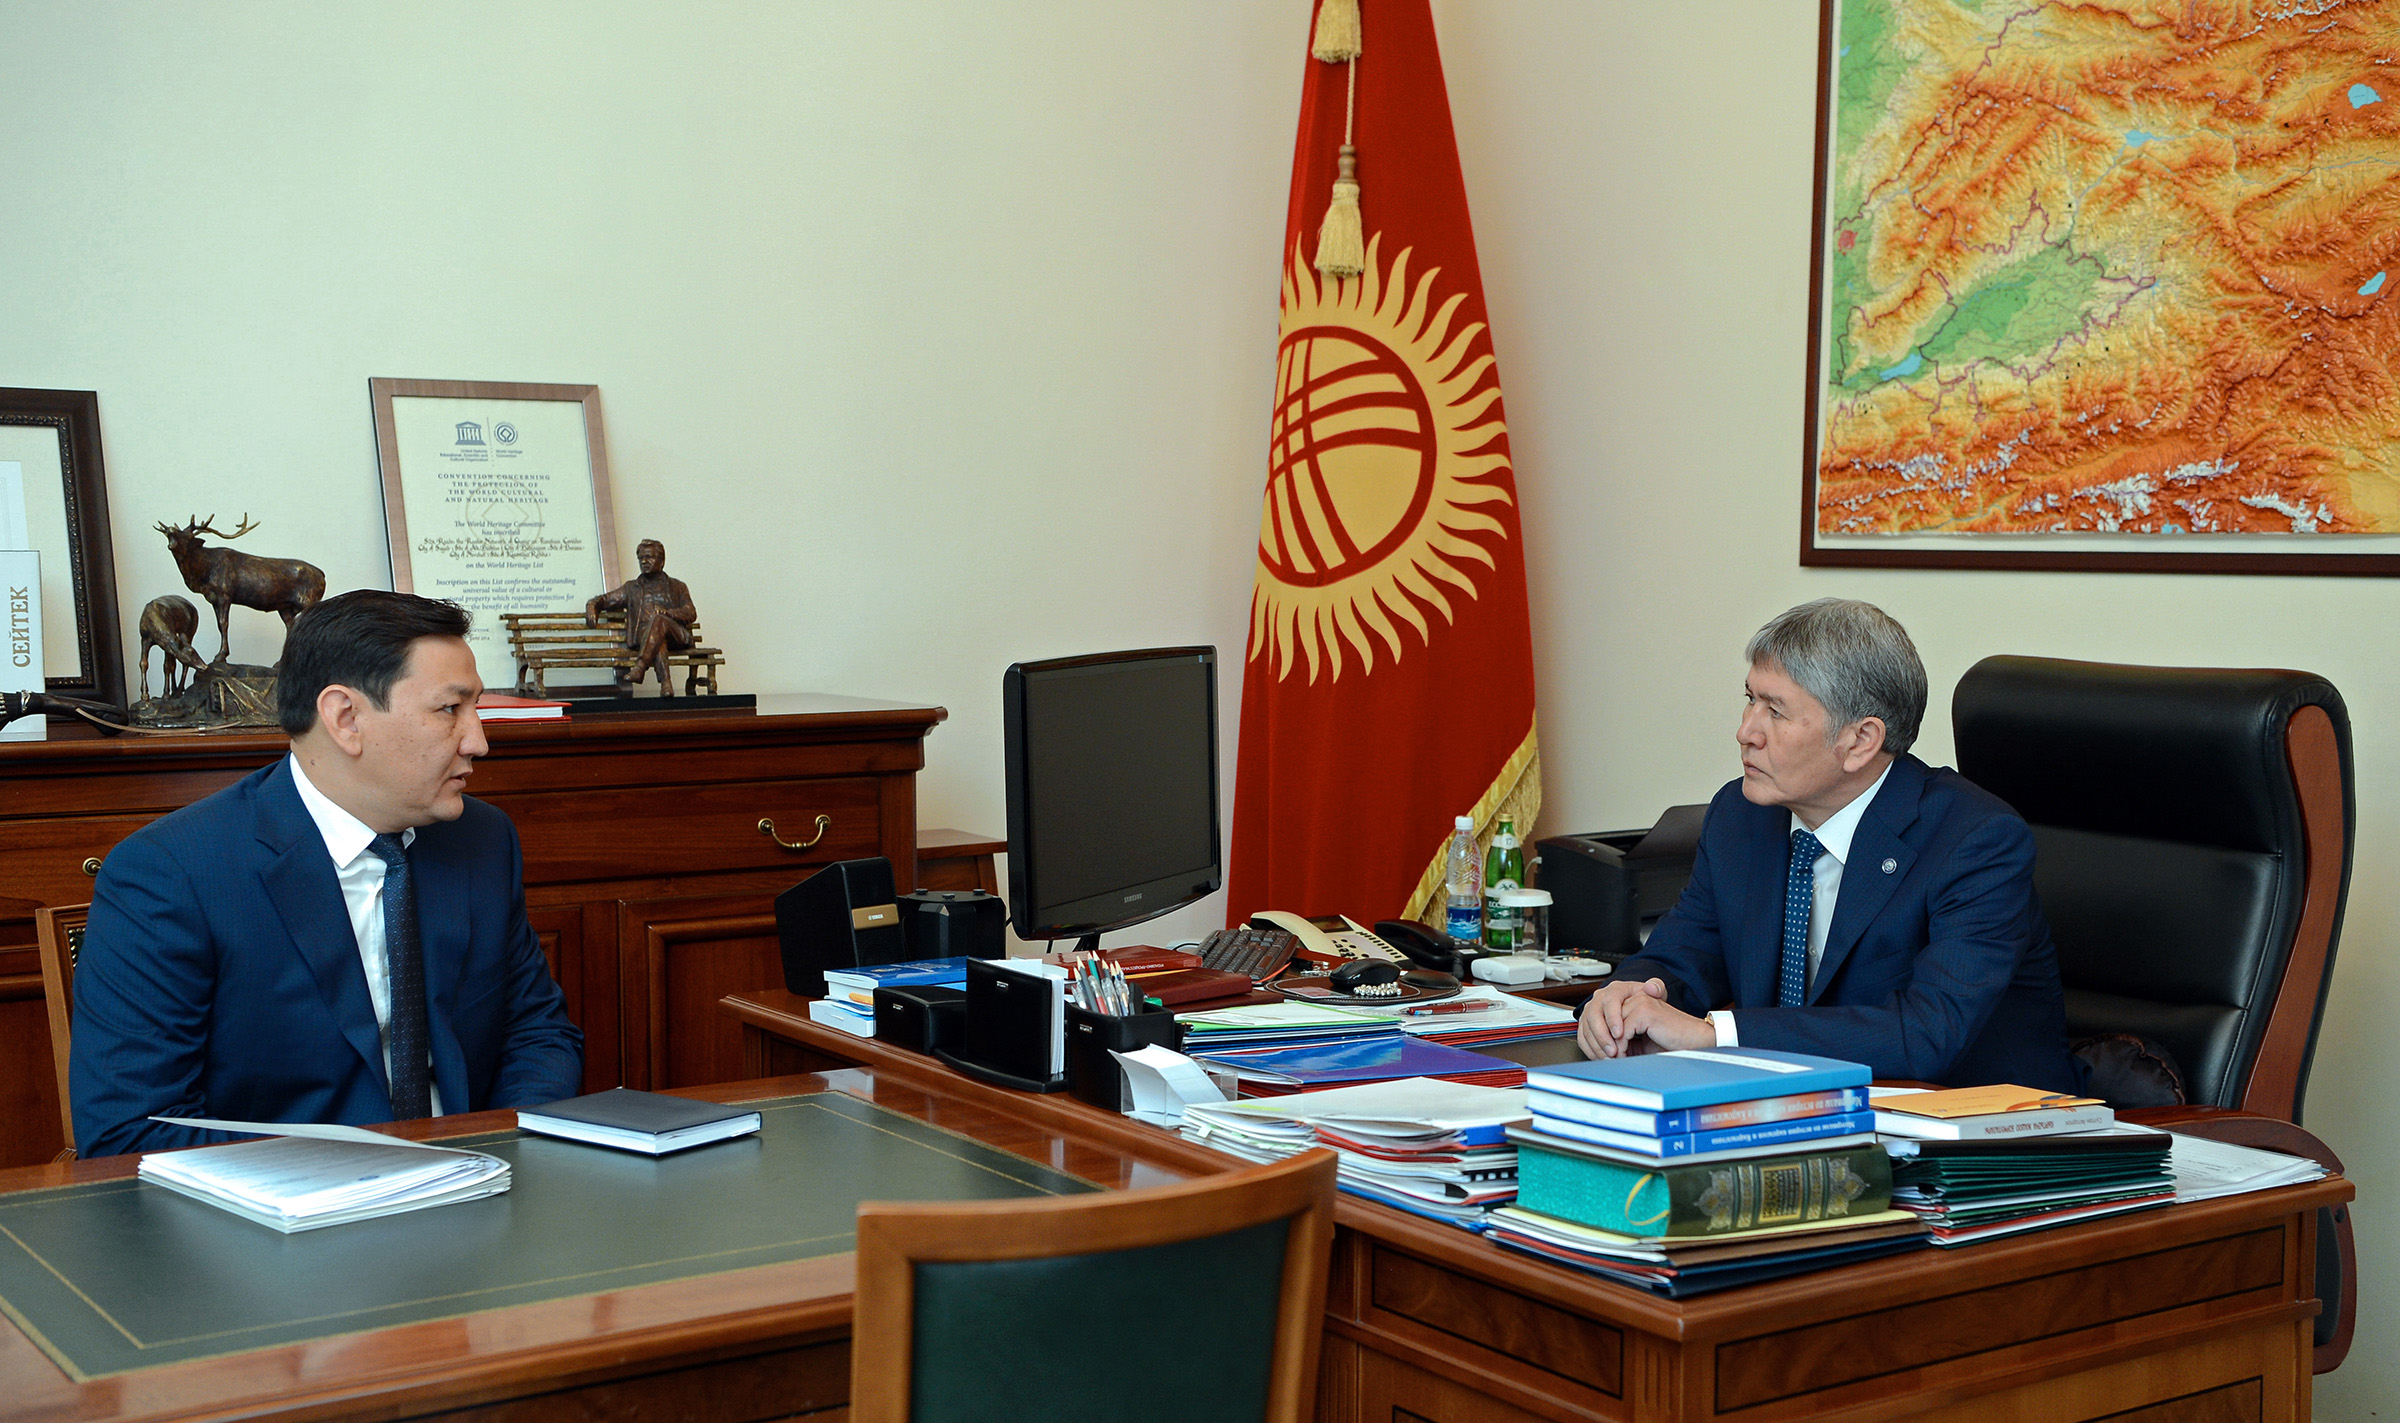 The former head of the GKNB, Abdil Segizbayev, speaking to ex-President Almazbek Atambayev. (Photo: Kyrgyzstan presidential administration website).